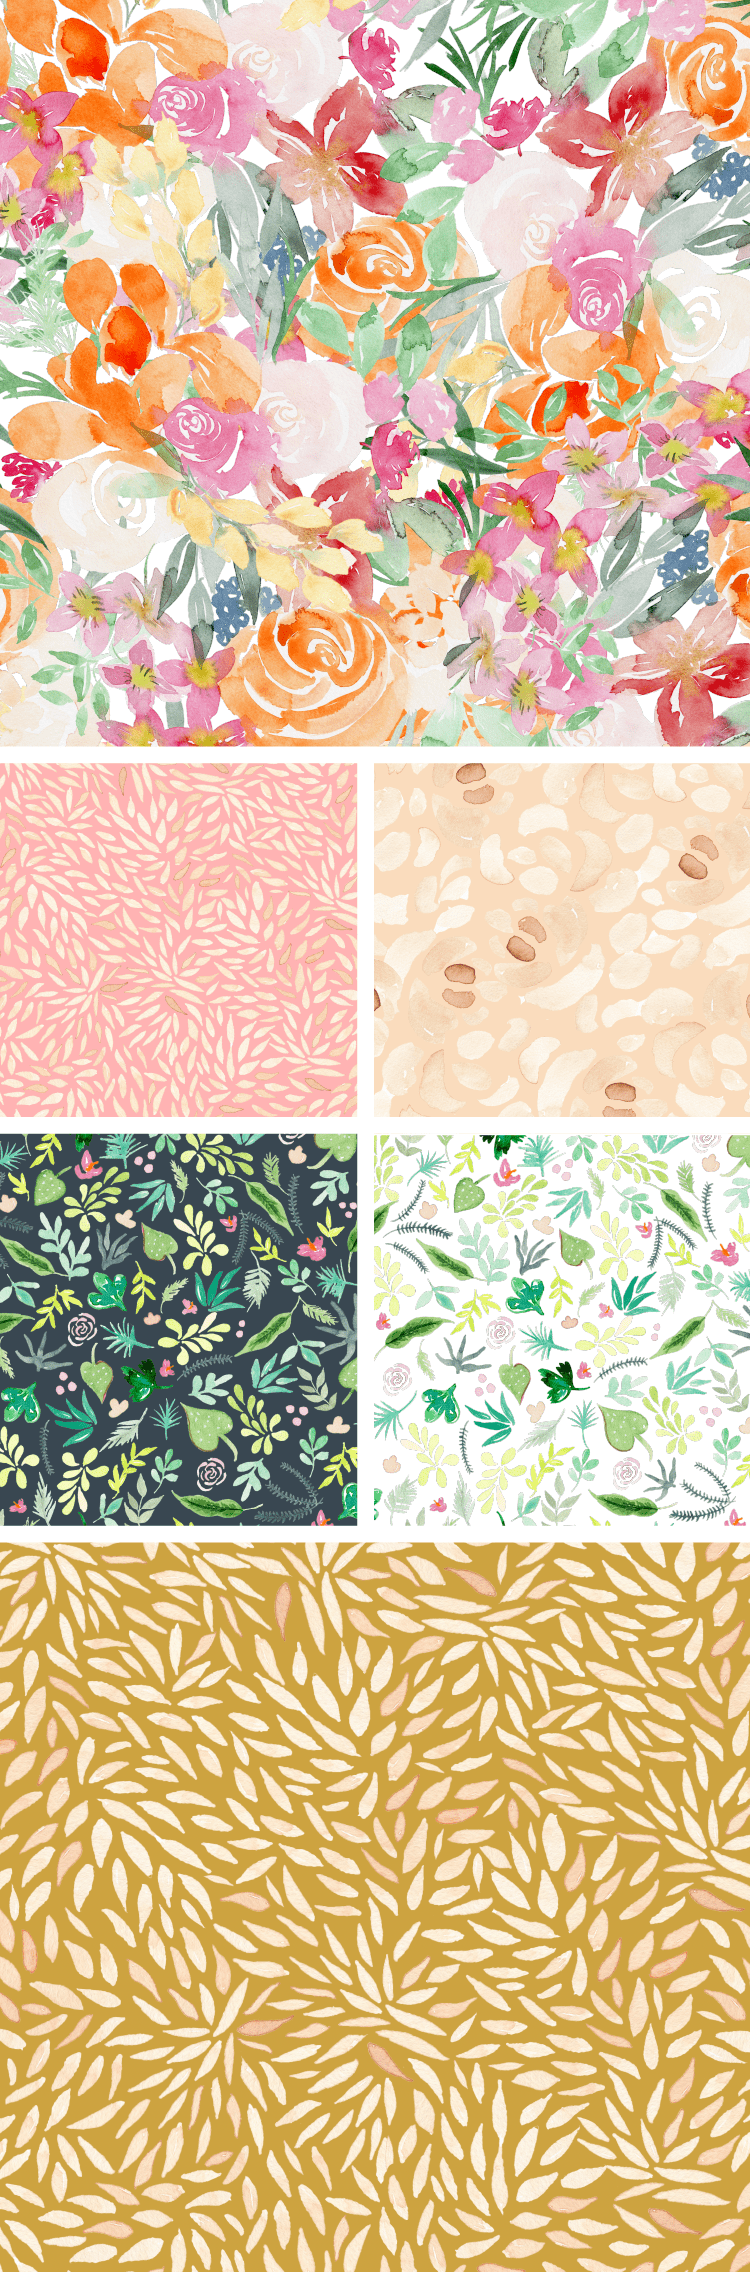 Spoonflower watercolor patterns by One and Only Paper